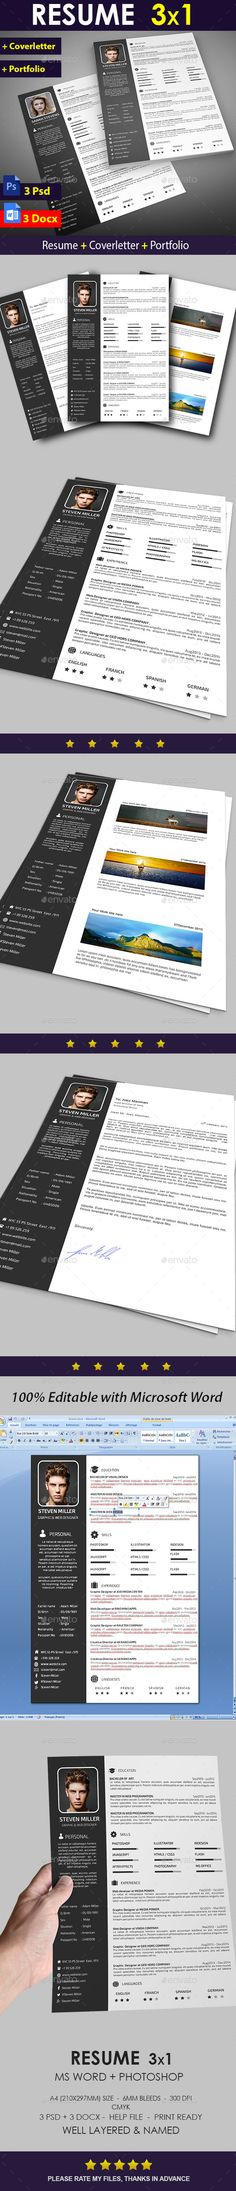 Word Resume Font logo, Cv ideas and Resume cv - word resumes